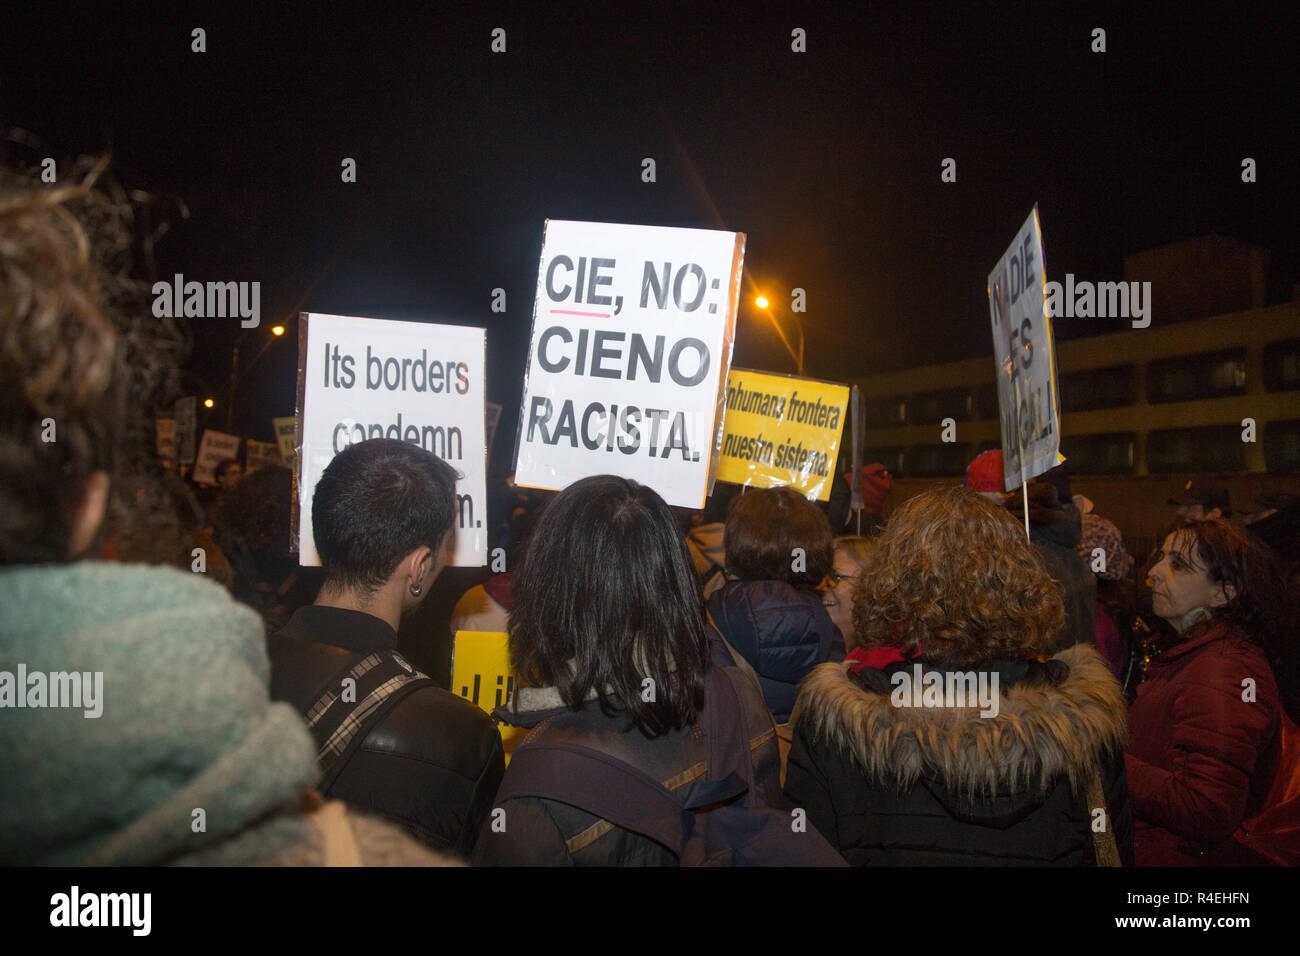 Madrid, Spain. 27th Nov, 2018. Protesters are seen holding placards during the protest.Demonstration was held in front of the Immigration Detention Centre to demand for the closure of this centre and the rest in Europe for treating undocumented immigrants as criminals, depriving them of freedom, against Human Rights and for the racist treatment in them. Credit: Lito Lizana/SOPA Images/ZUMA Wire/Alamy Live News - Stock Image